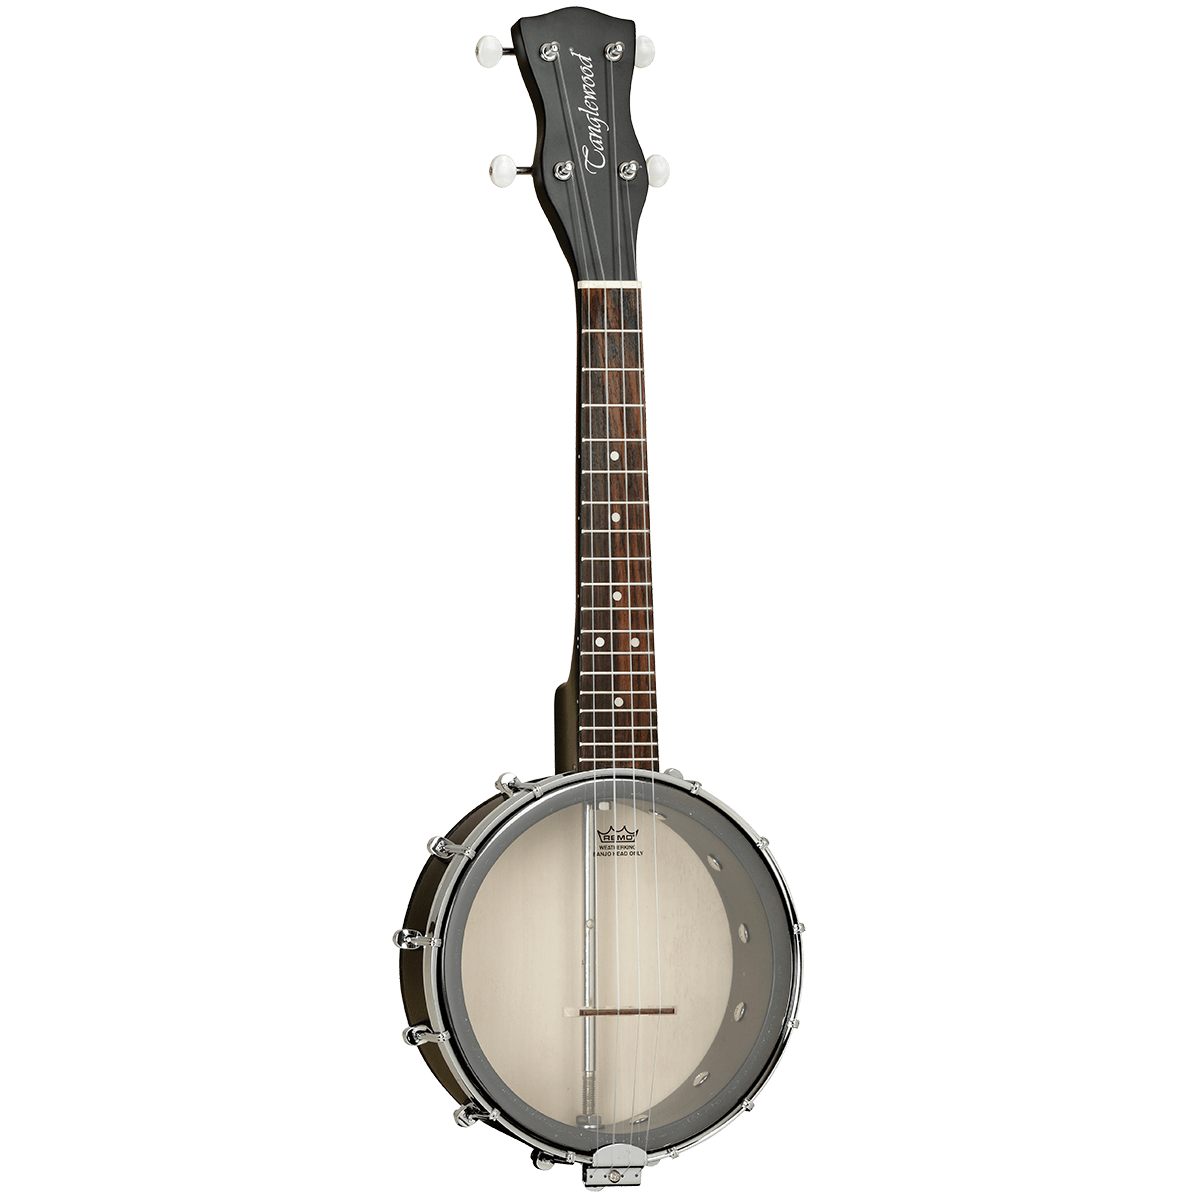 TANGLEWOOD UNION SERIES BANJO UKULELE - Arties Music Online